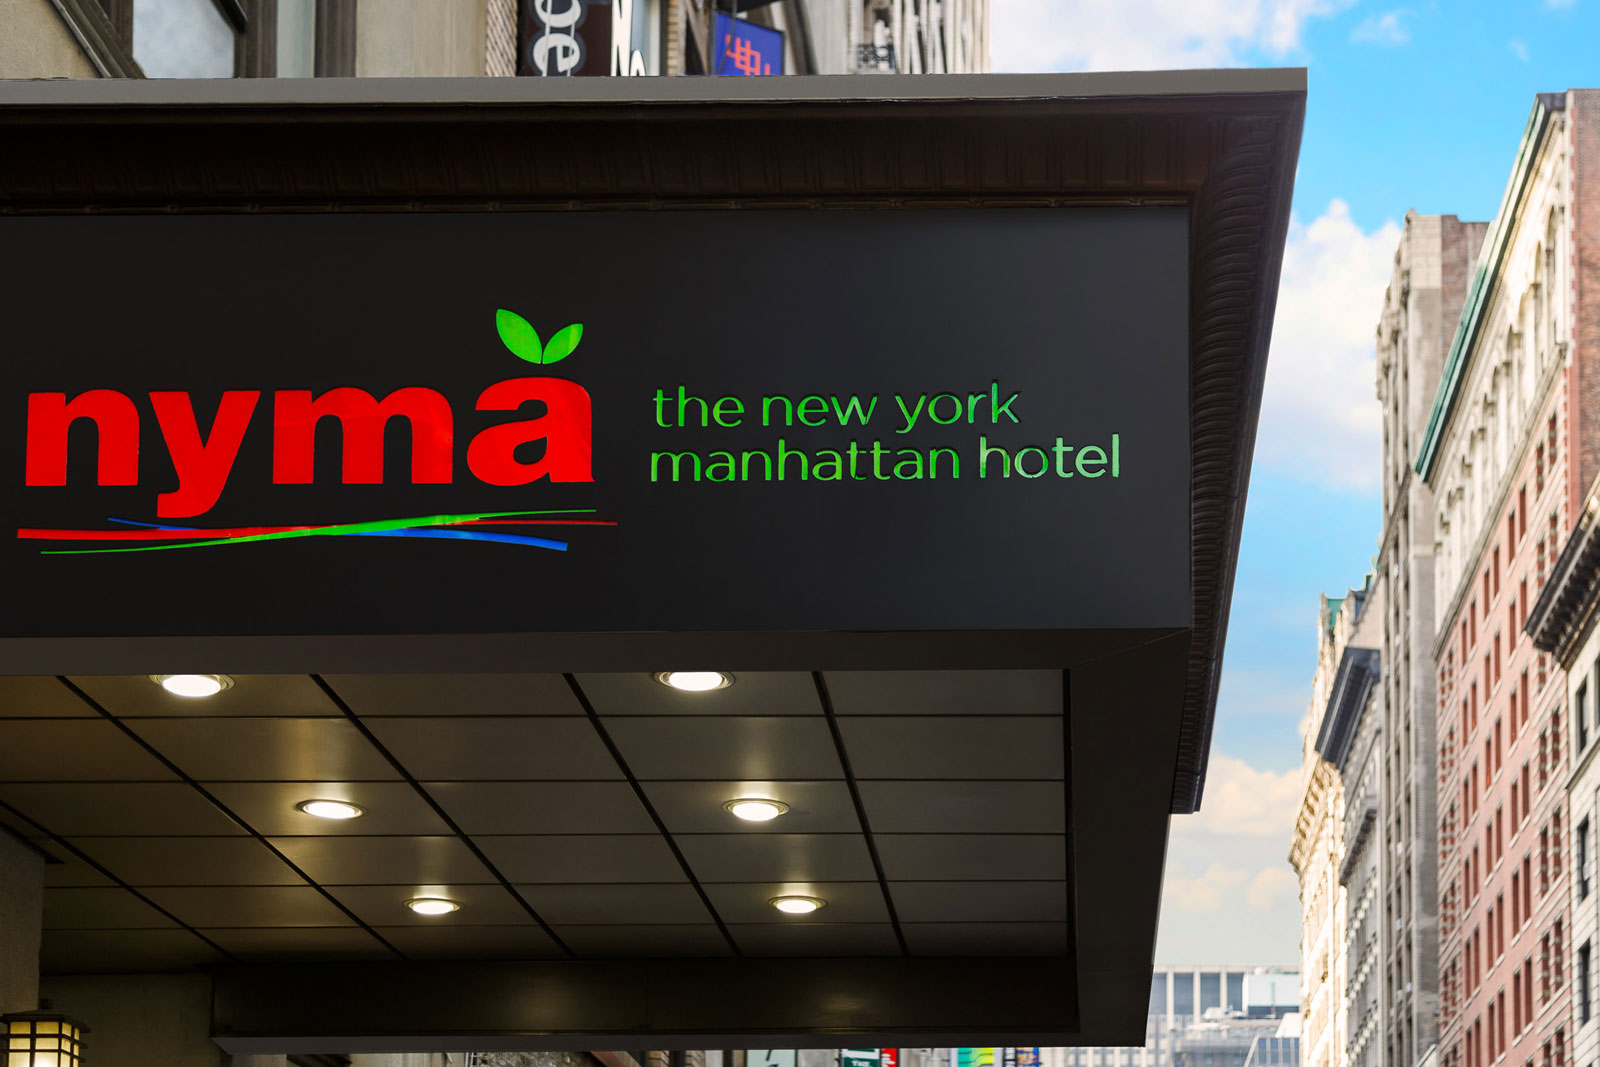 The New York Manhattan Hotel | Boutique NYC Hotel NYMA